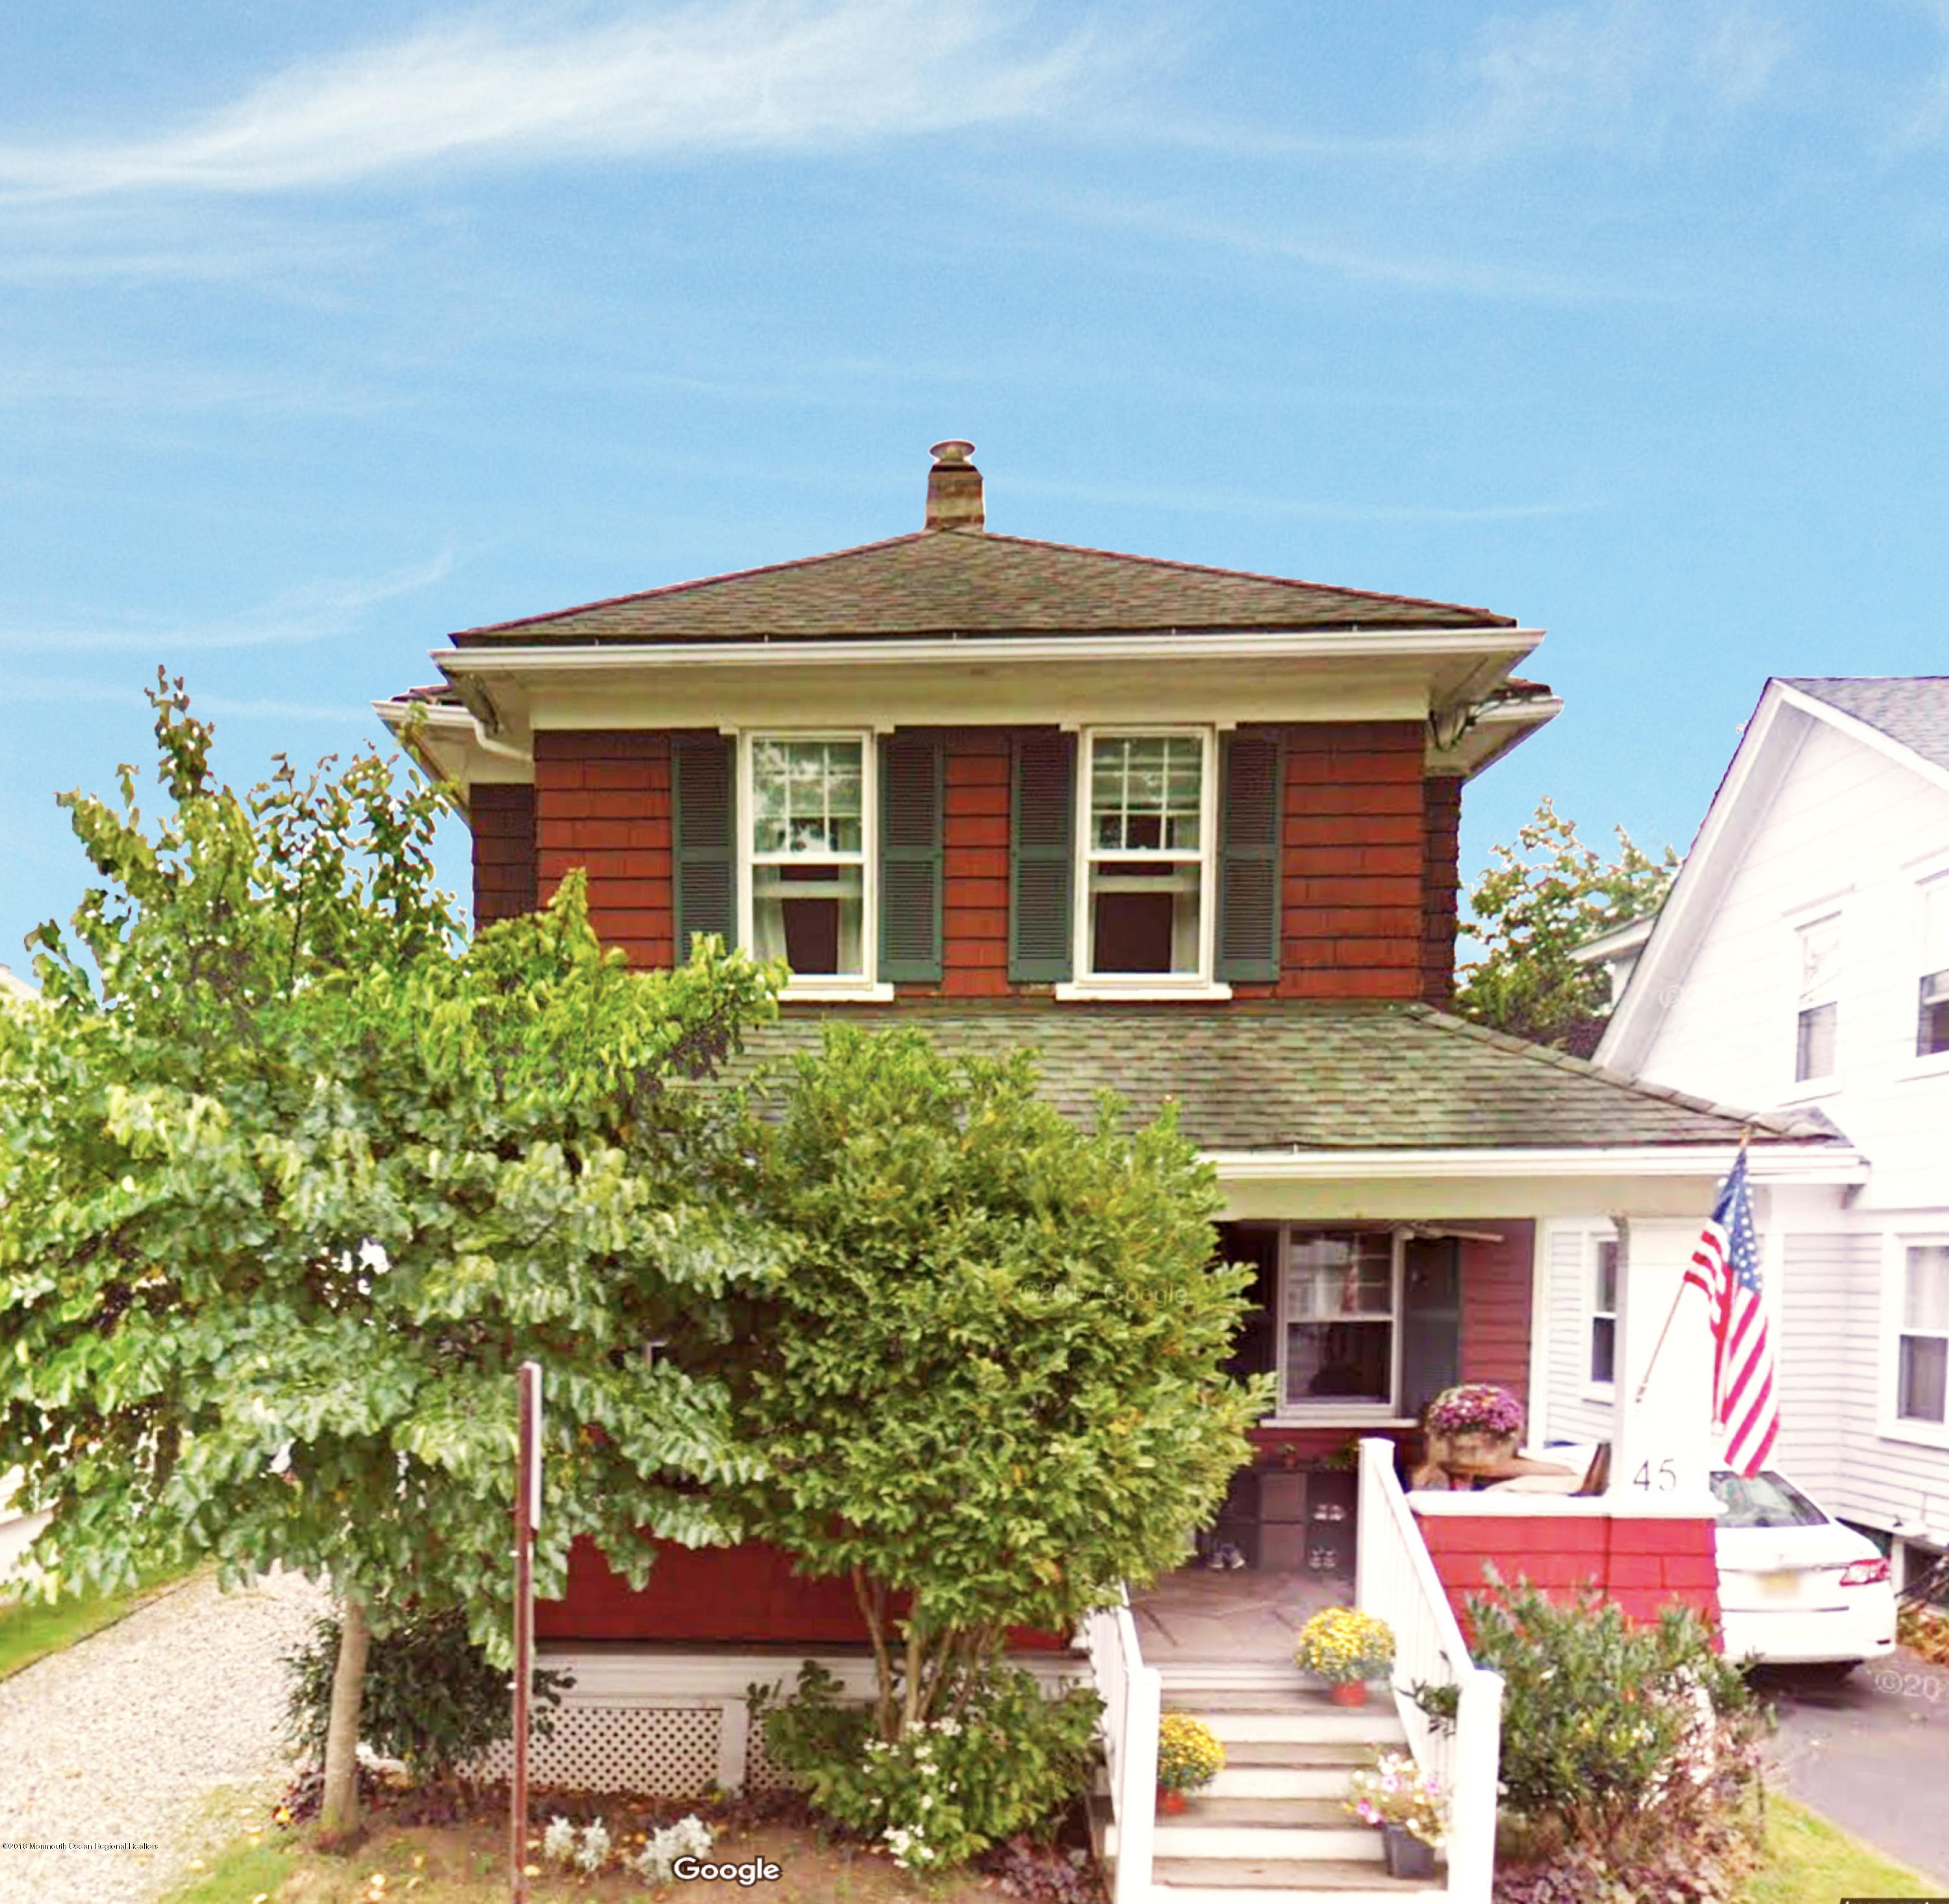 45 WAVERLY PLACE, RED BANK, NJ 07701